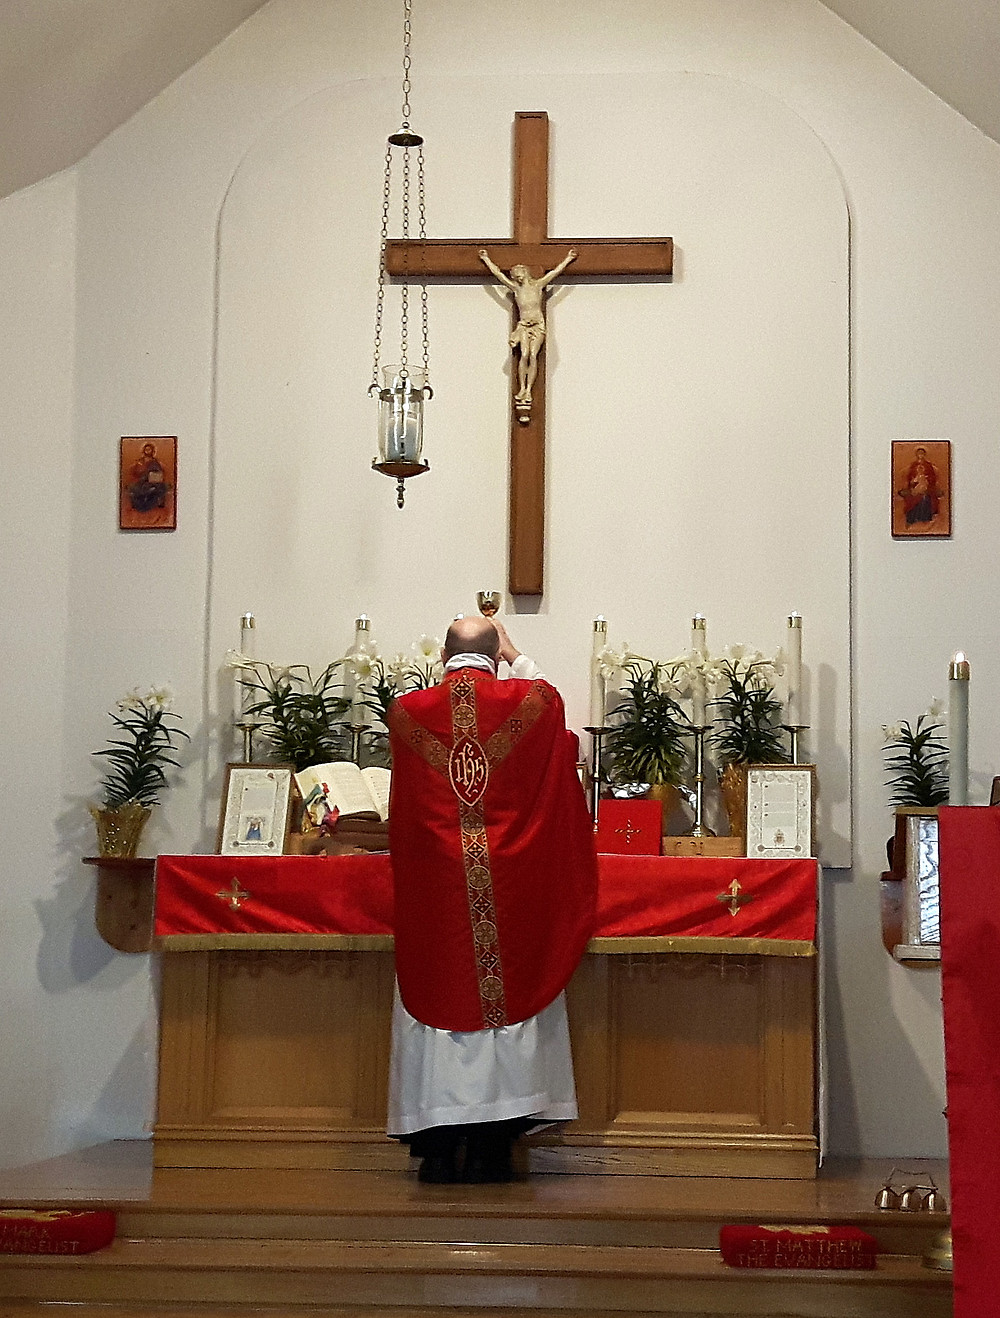 Fr. James Tilley, parish priest at Church of the Good Shepherd, celebrating ad orientem at a Sung Mass